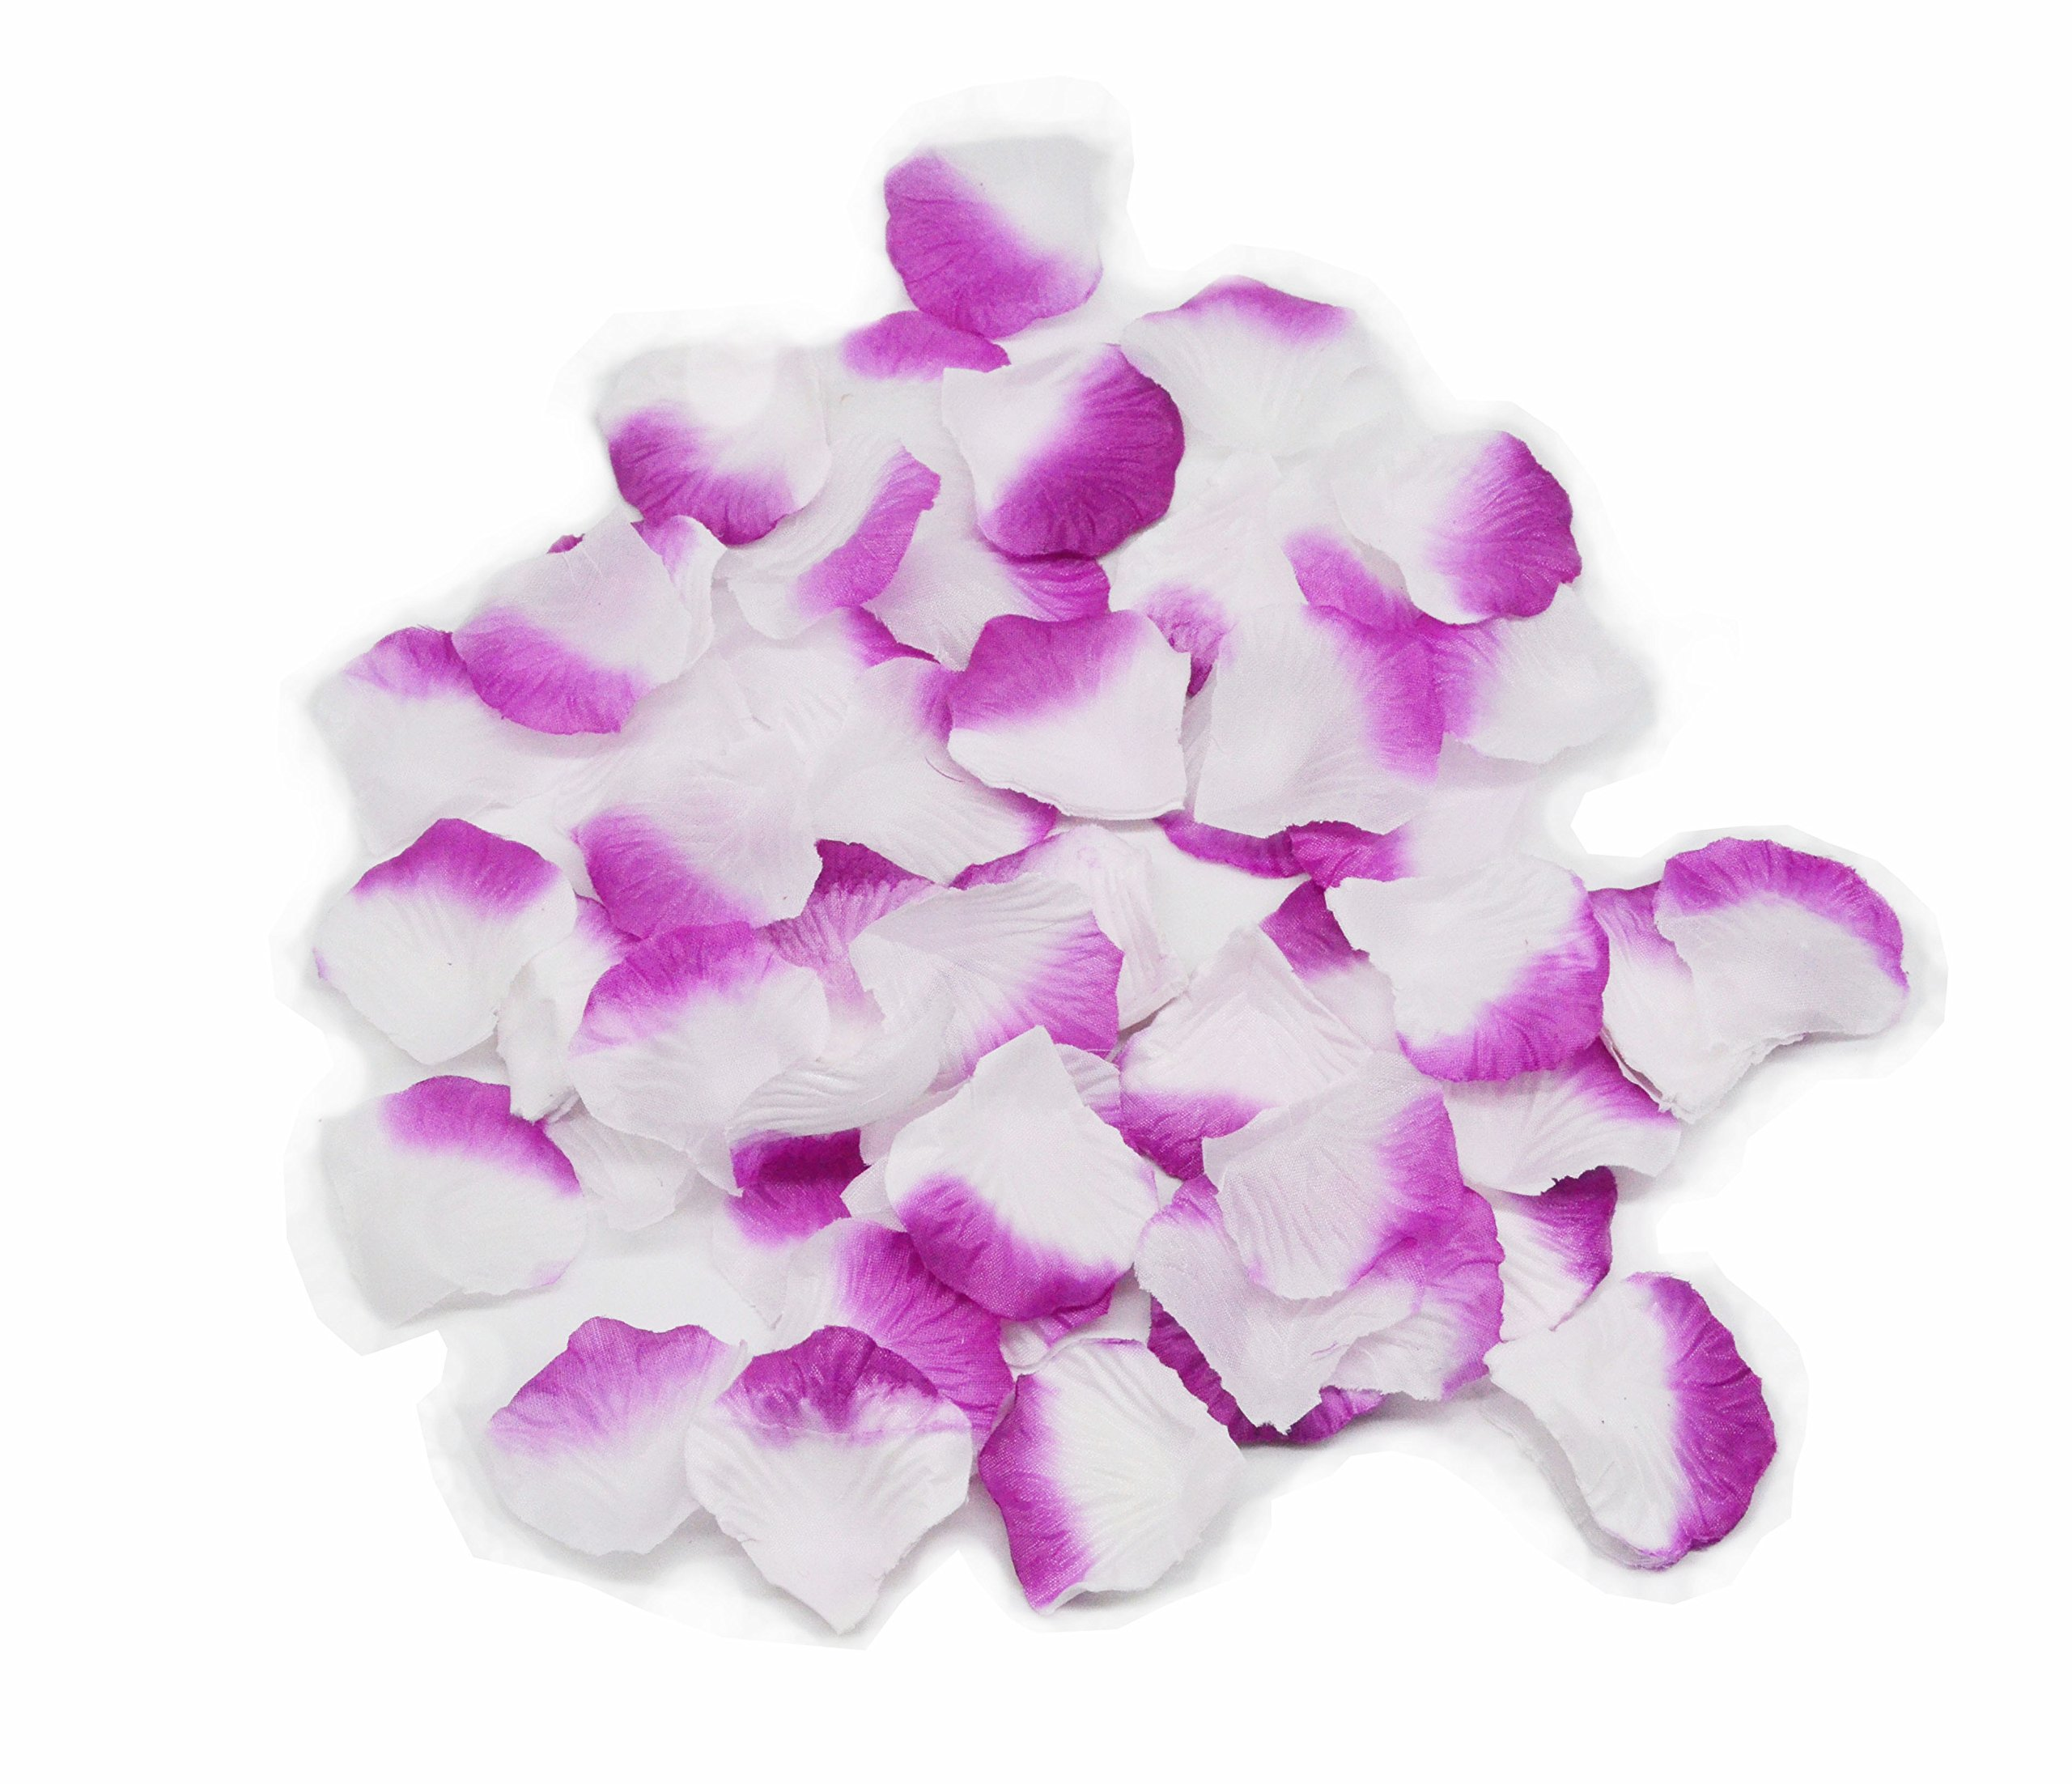 5000-Silk-Rose-Artificial-Petals-Supplies-Wedding-Decorations-White-and-purple-by-Shenglong